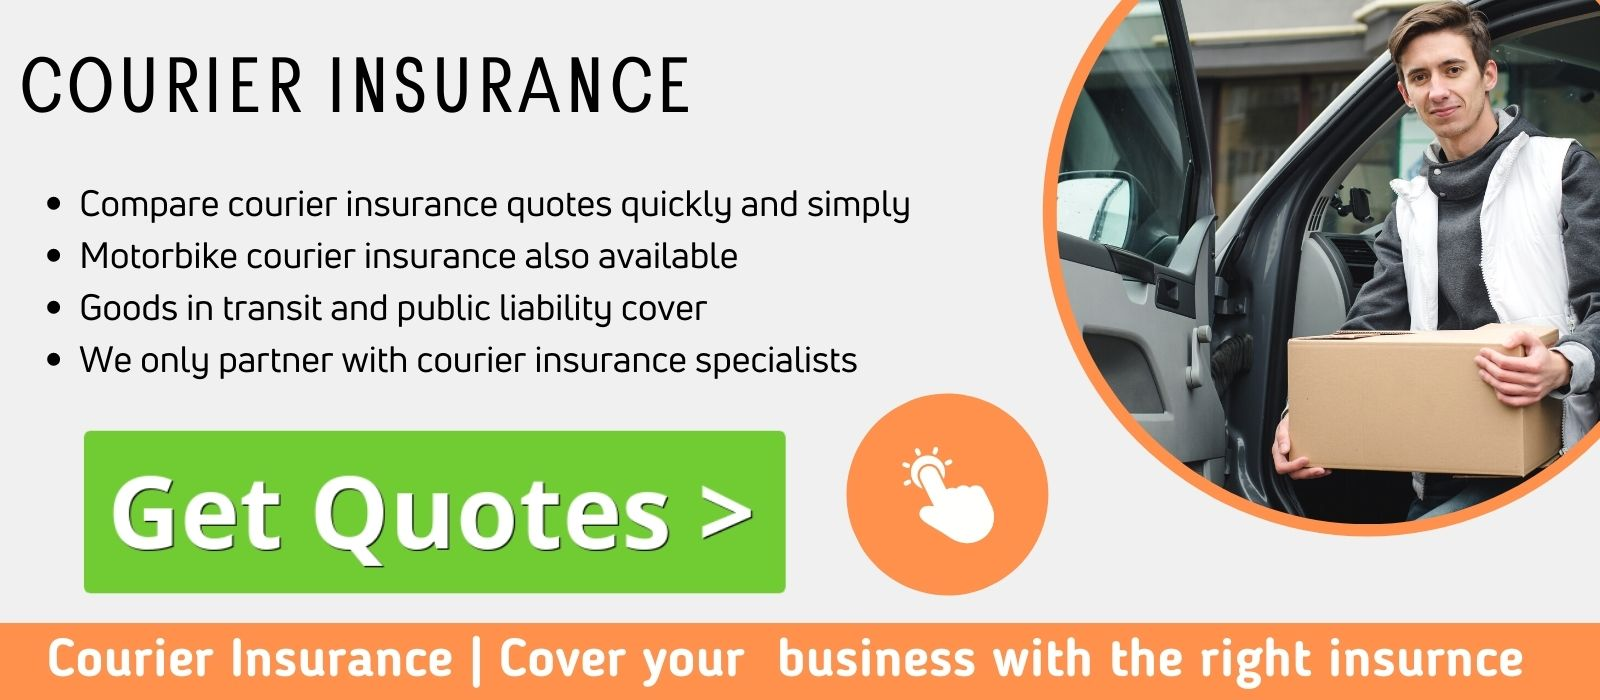 Compare Courier Insurance